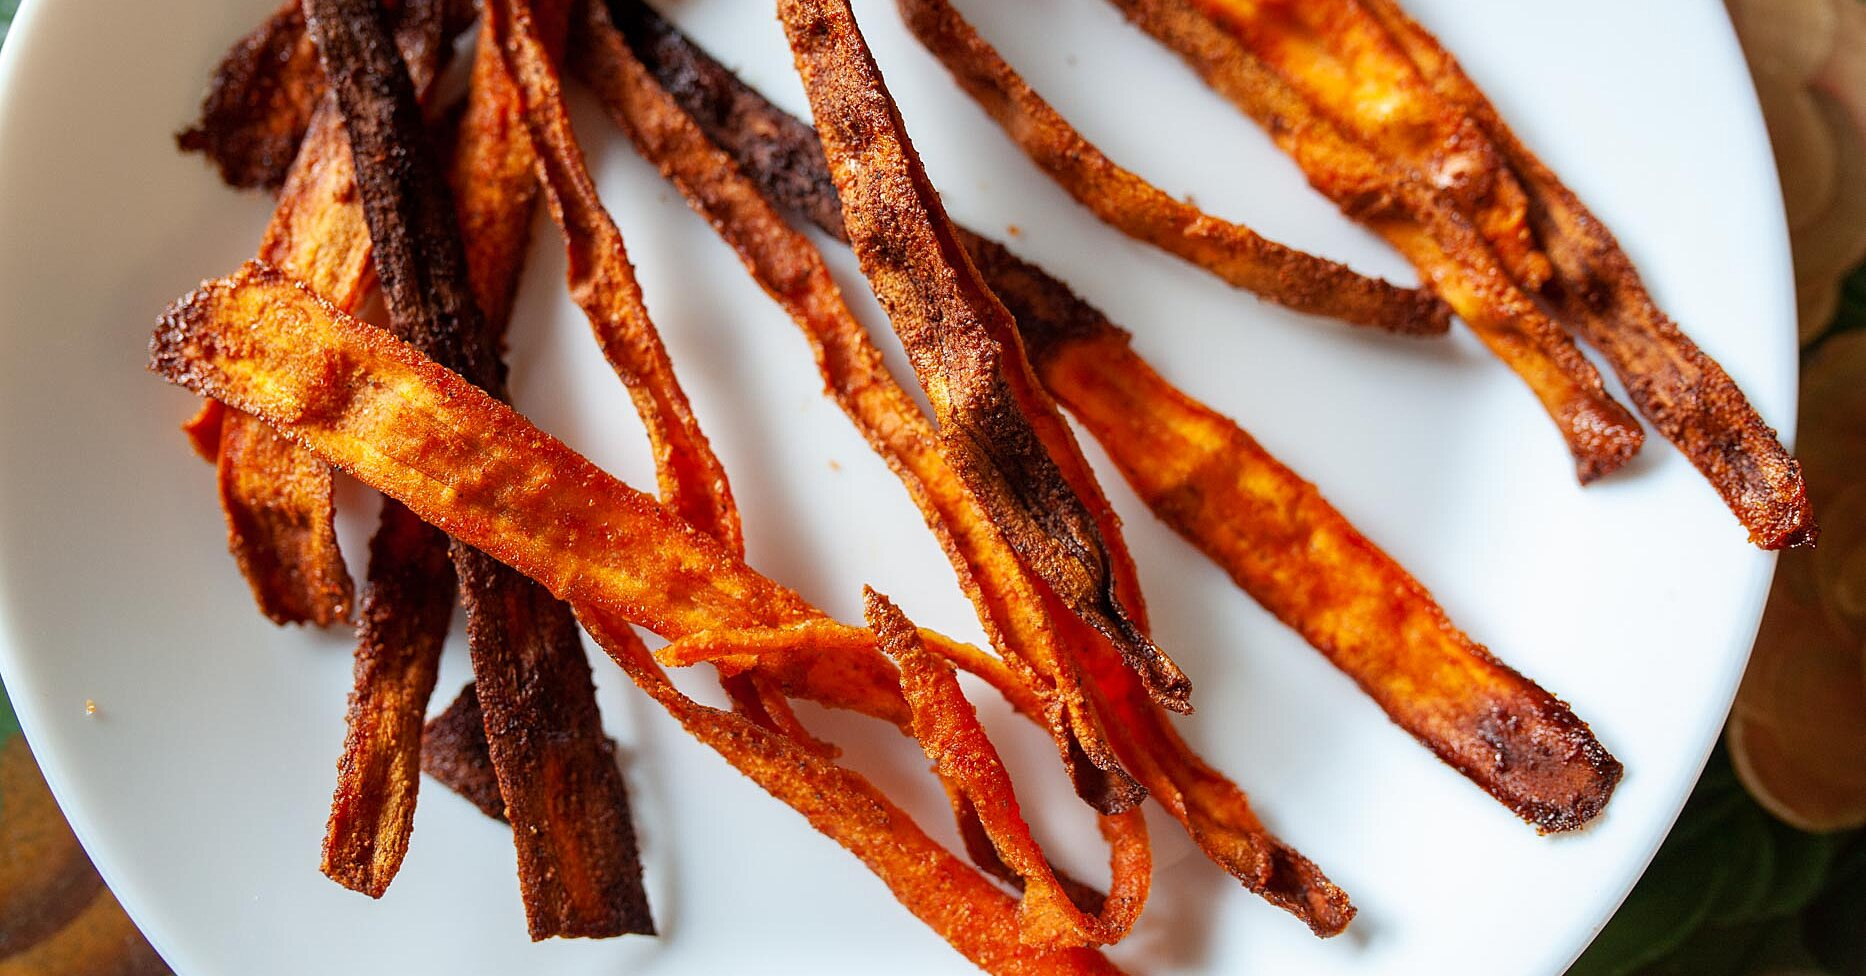 I Made the Carrot Bacon That's Trending on TikTok and Here's What it Tasted Like